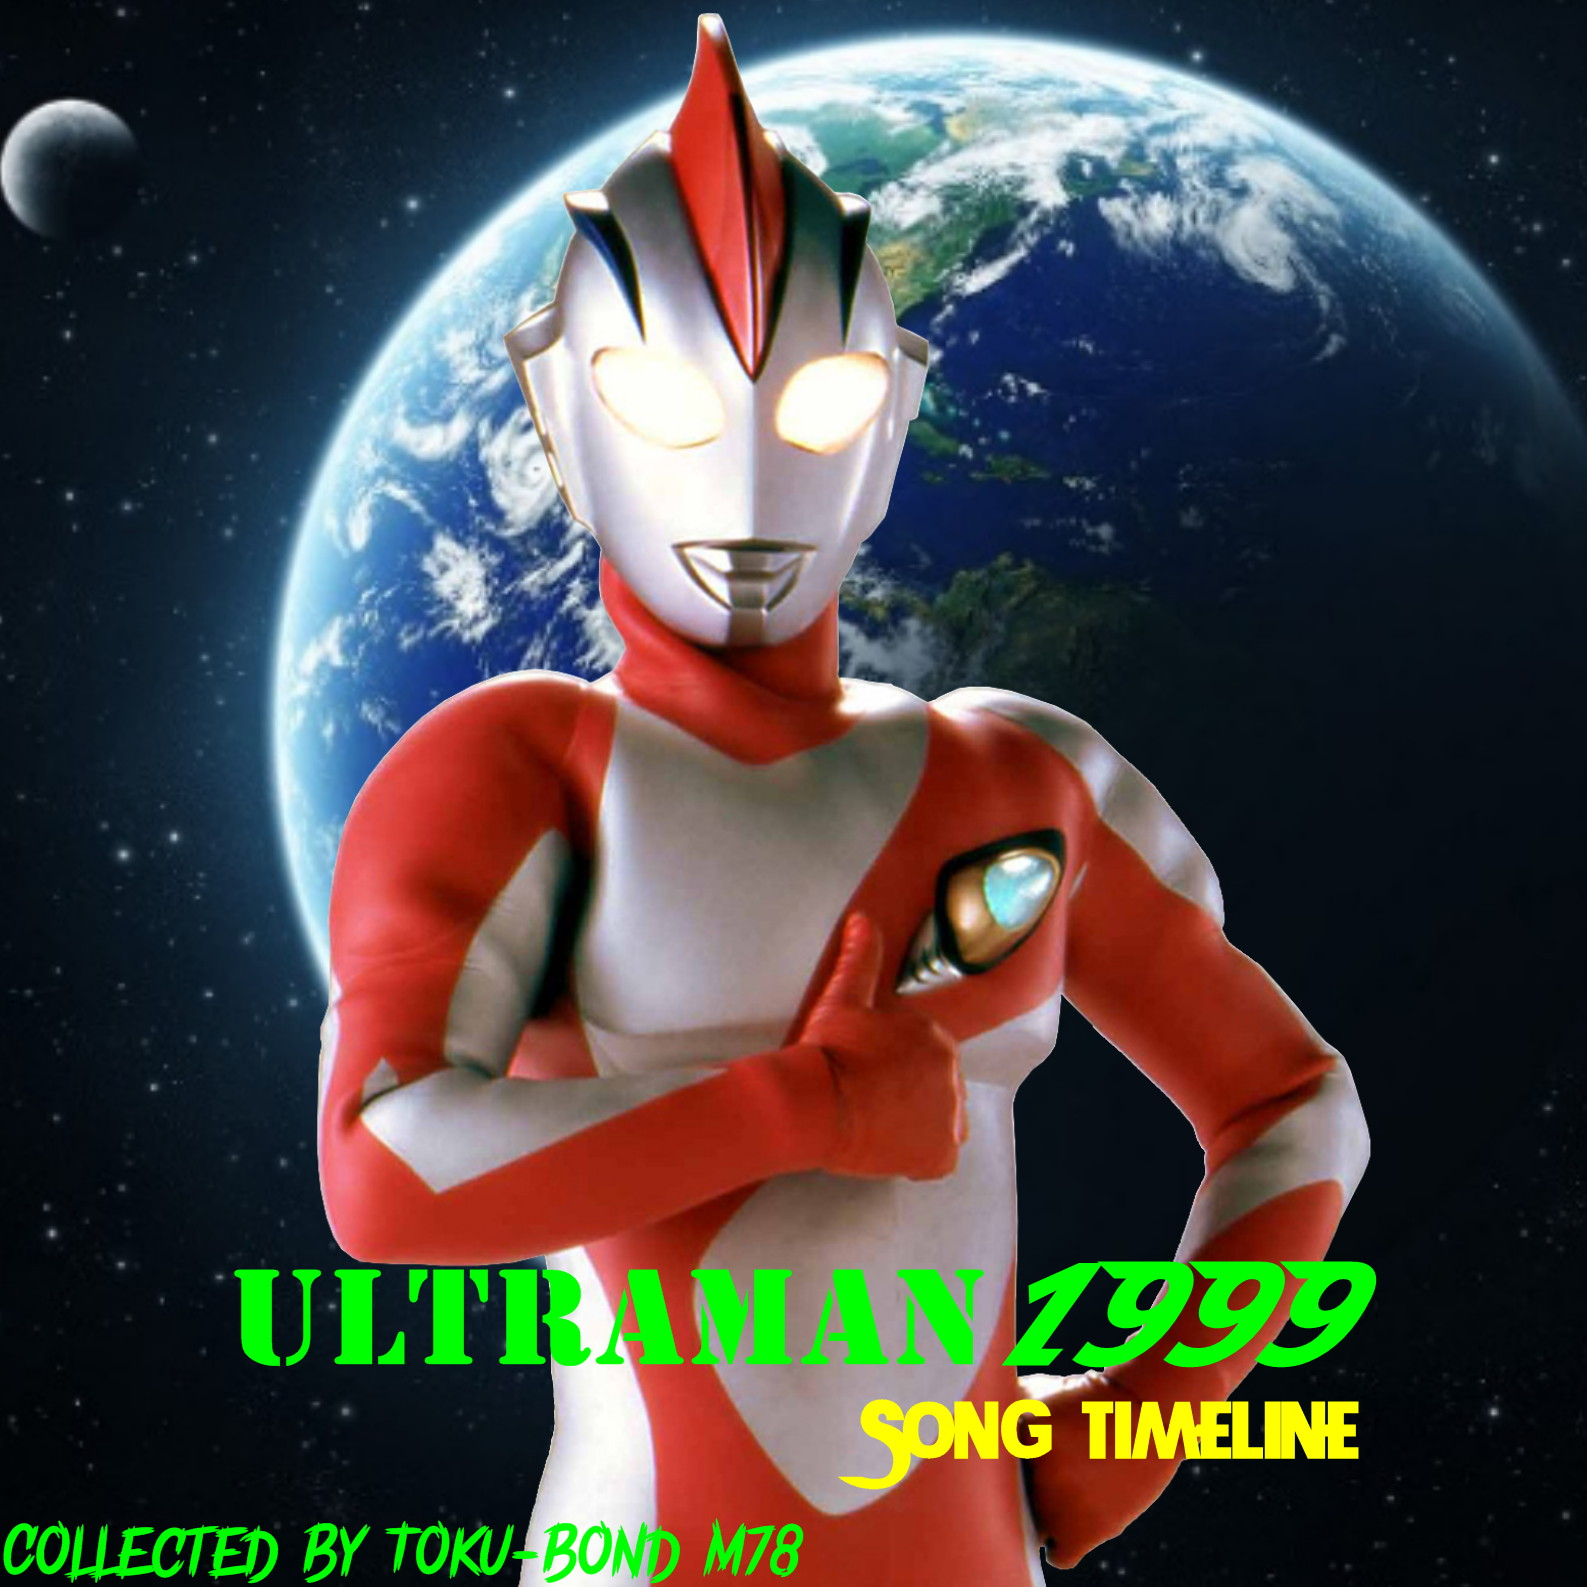 Im A Rider Song Download 320kbps: Download All Ultraman Song & Music Complete